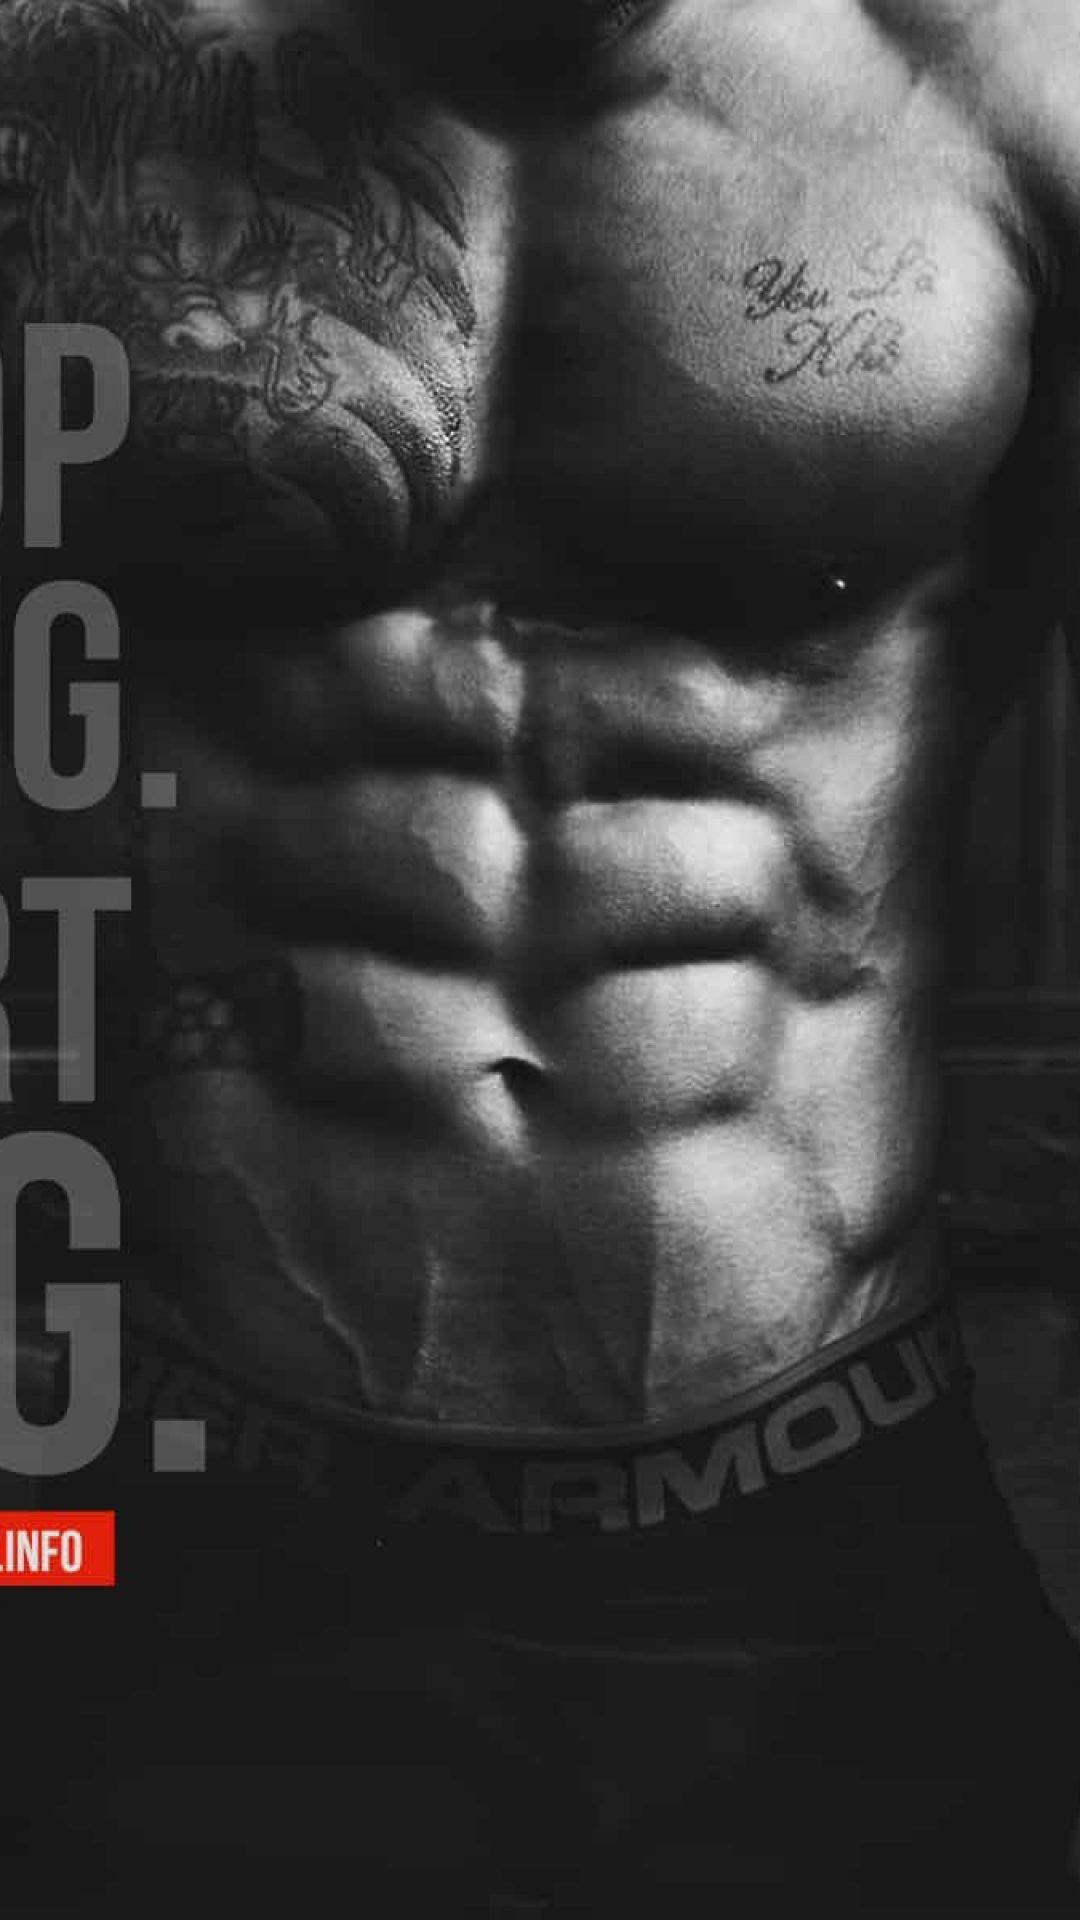 Body fitness images hd video